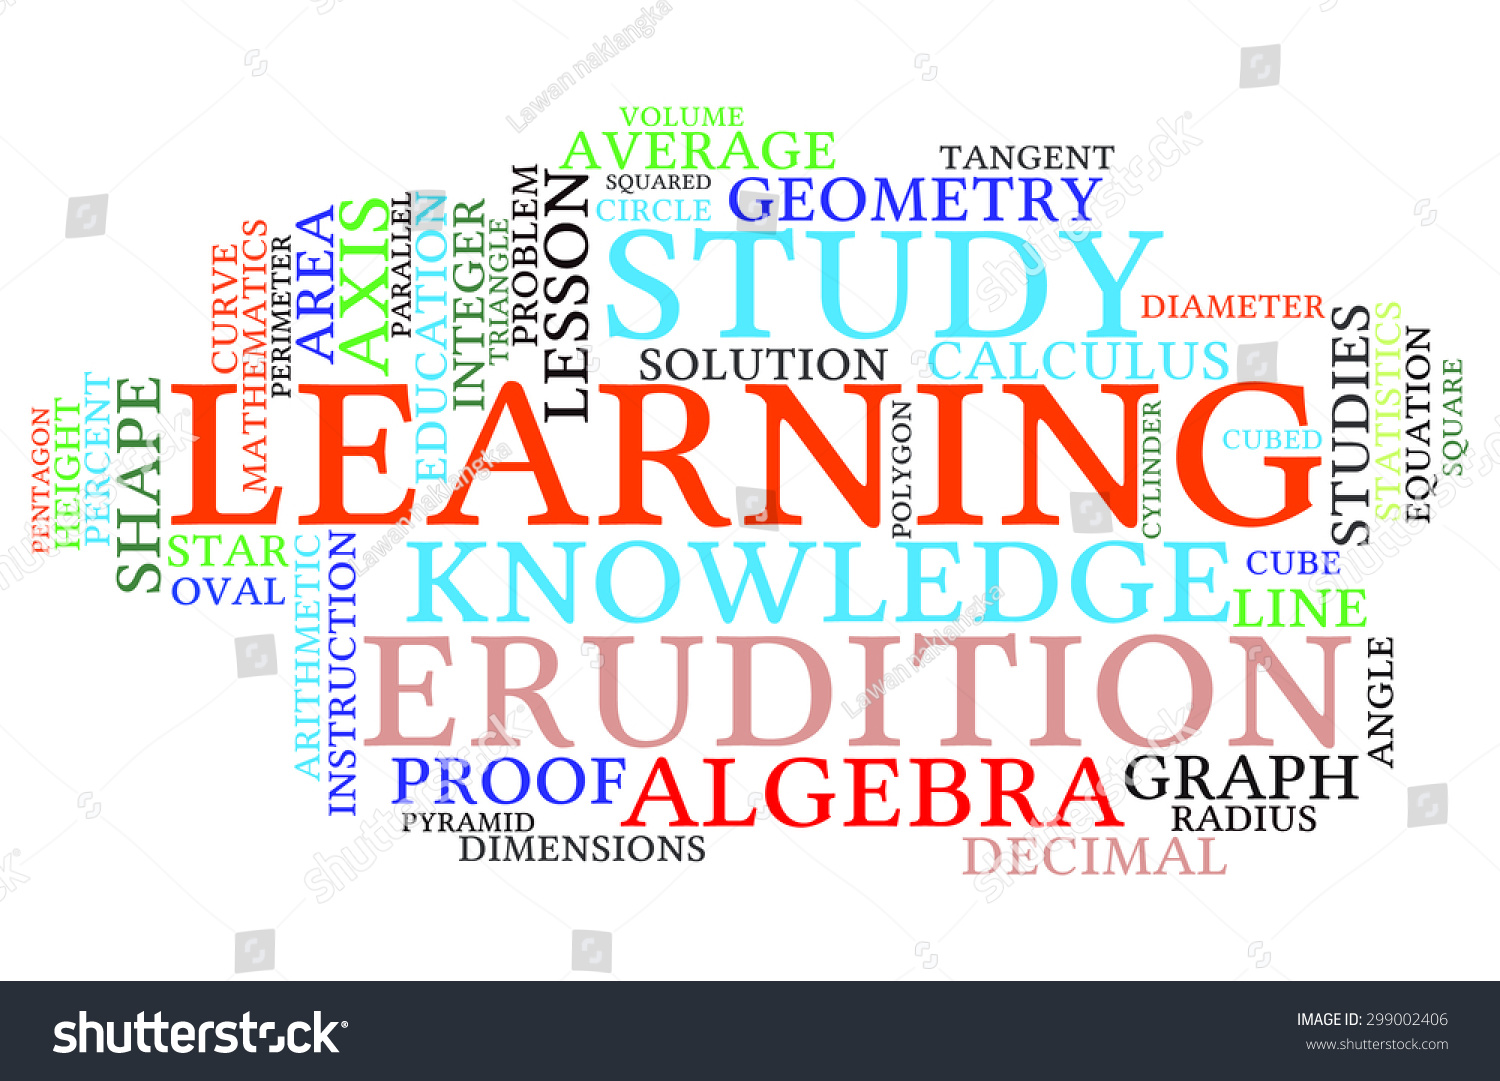 H tag background image - Shapes And Vocabulary Math Tag Word Cloud Background